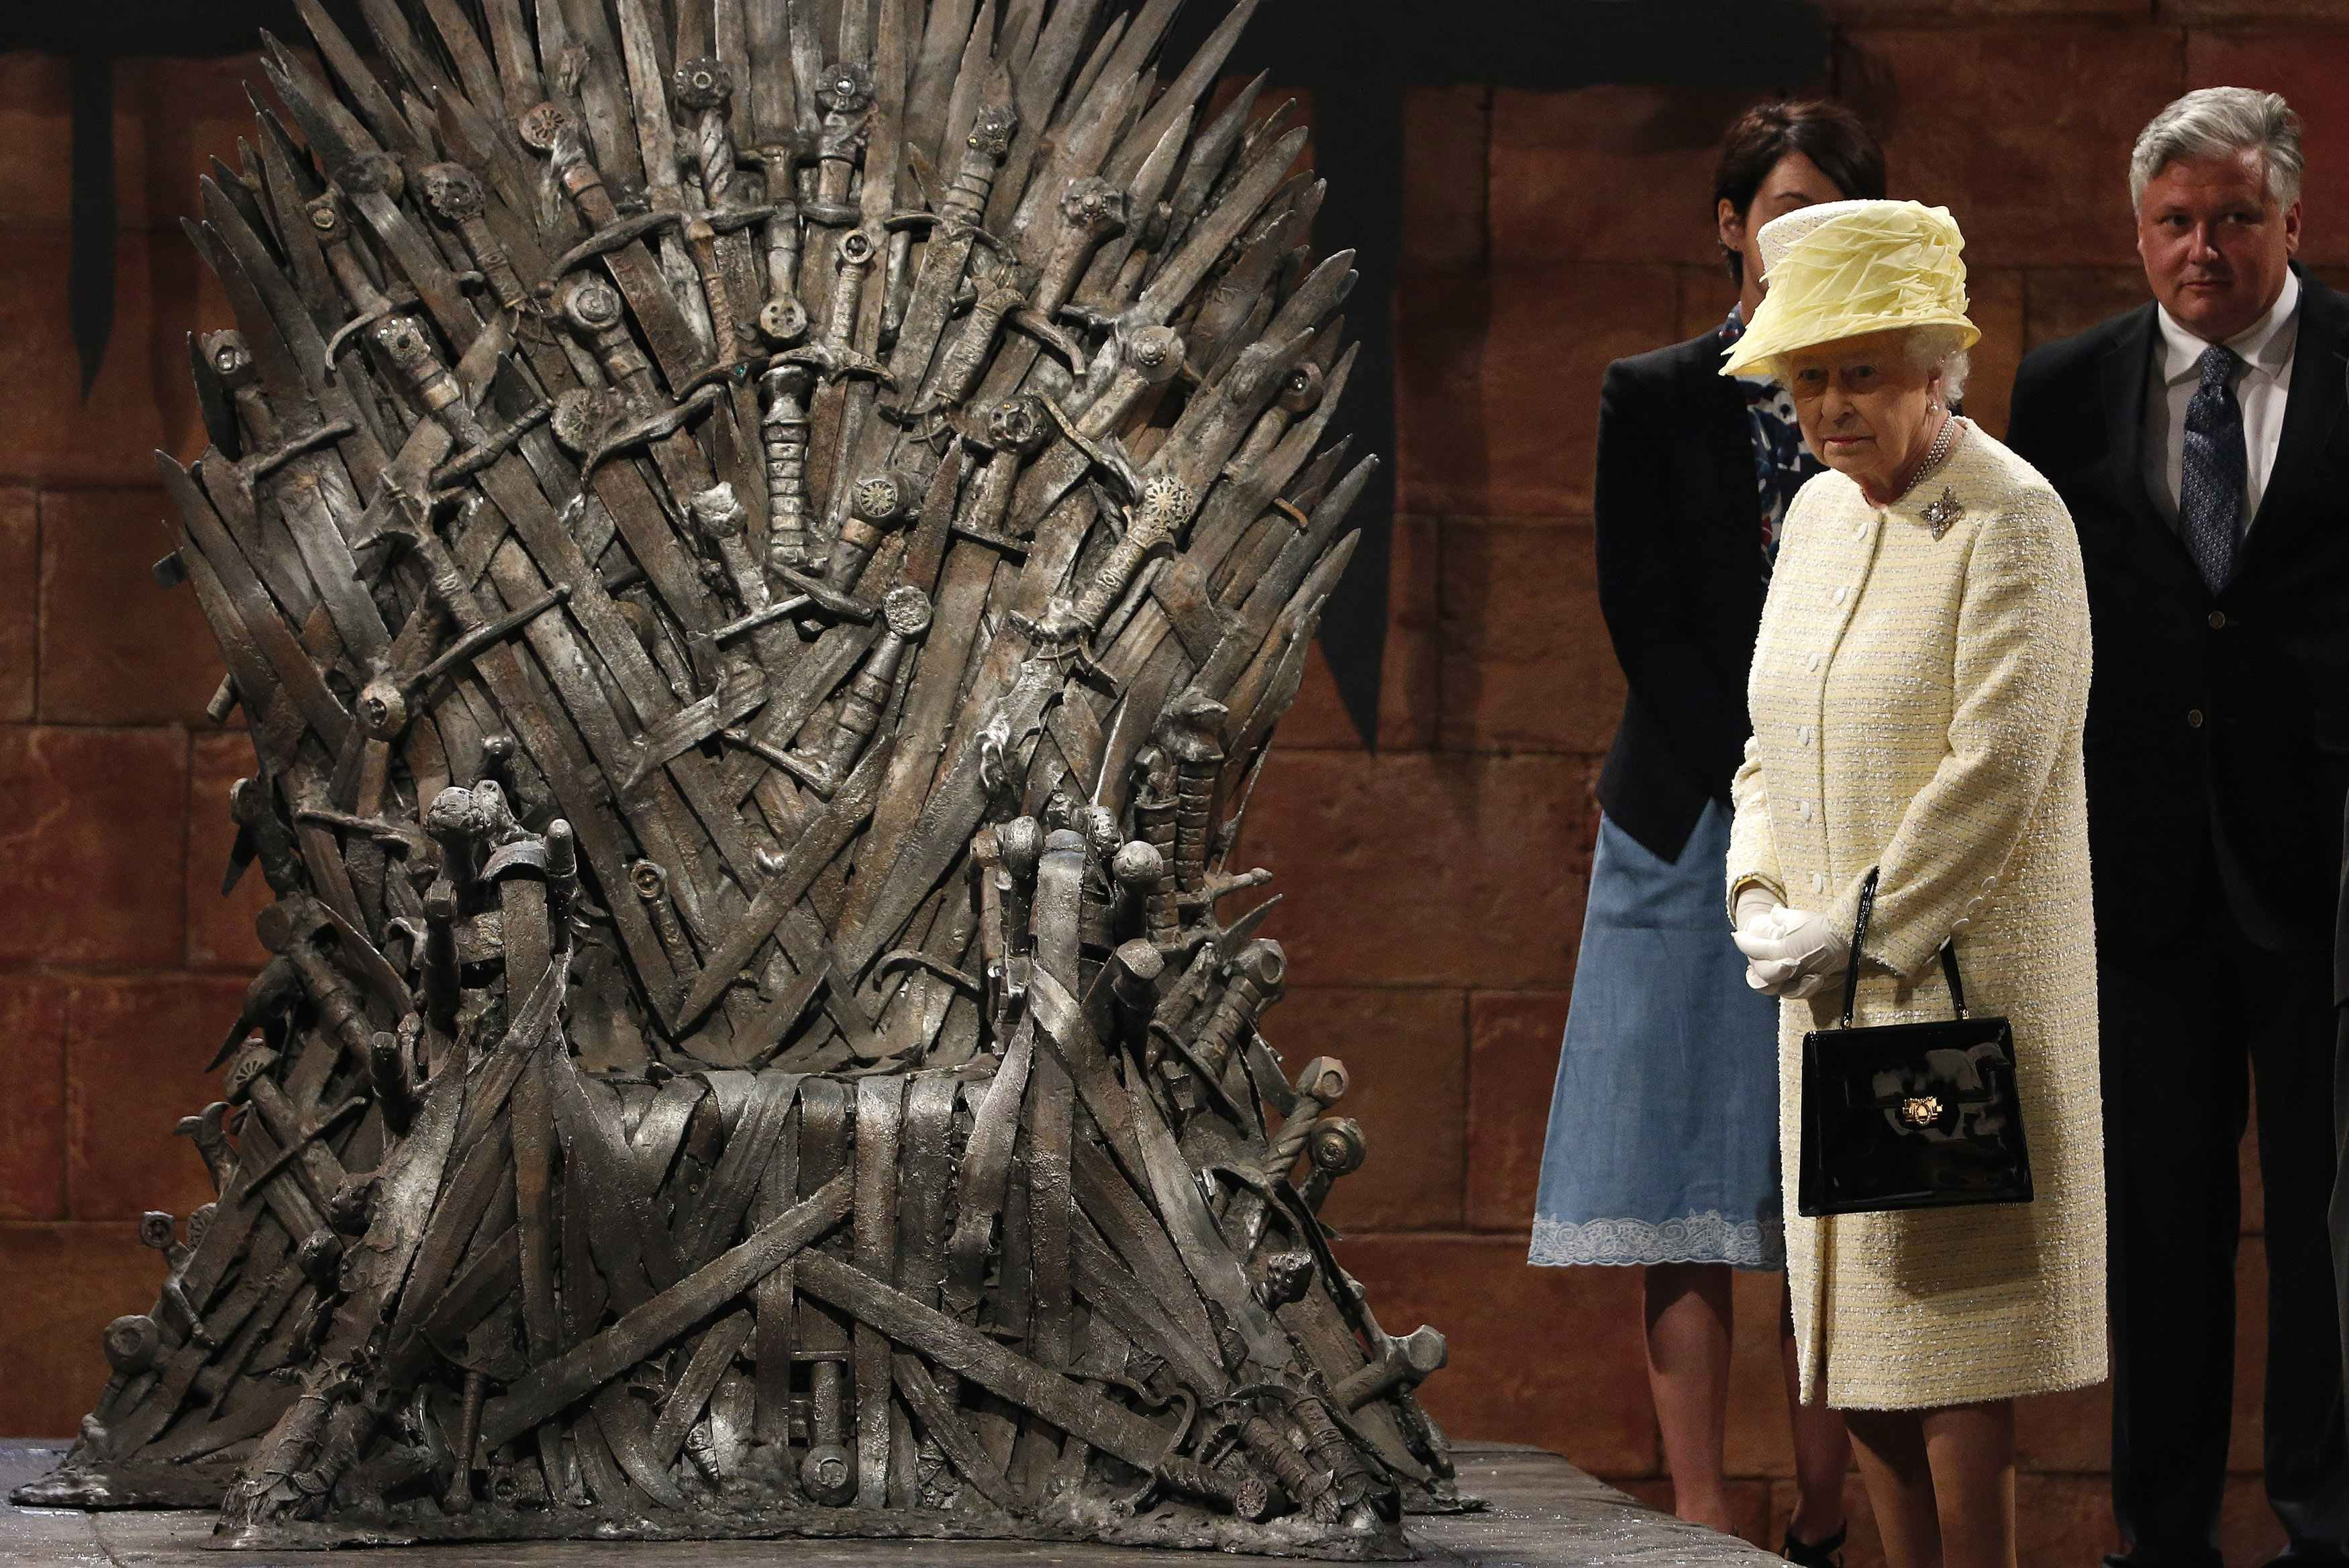 Britain's Queen Elizabeth looks at the Iron Throne as she meets members of the cast on the set of the television show Game of Thrones in the Titanic Quarter of Belfast, Northern Ireland, June 24, 2014.